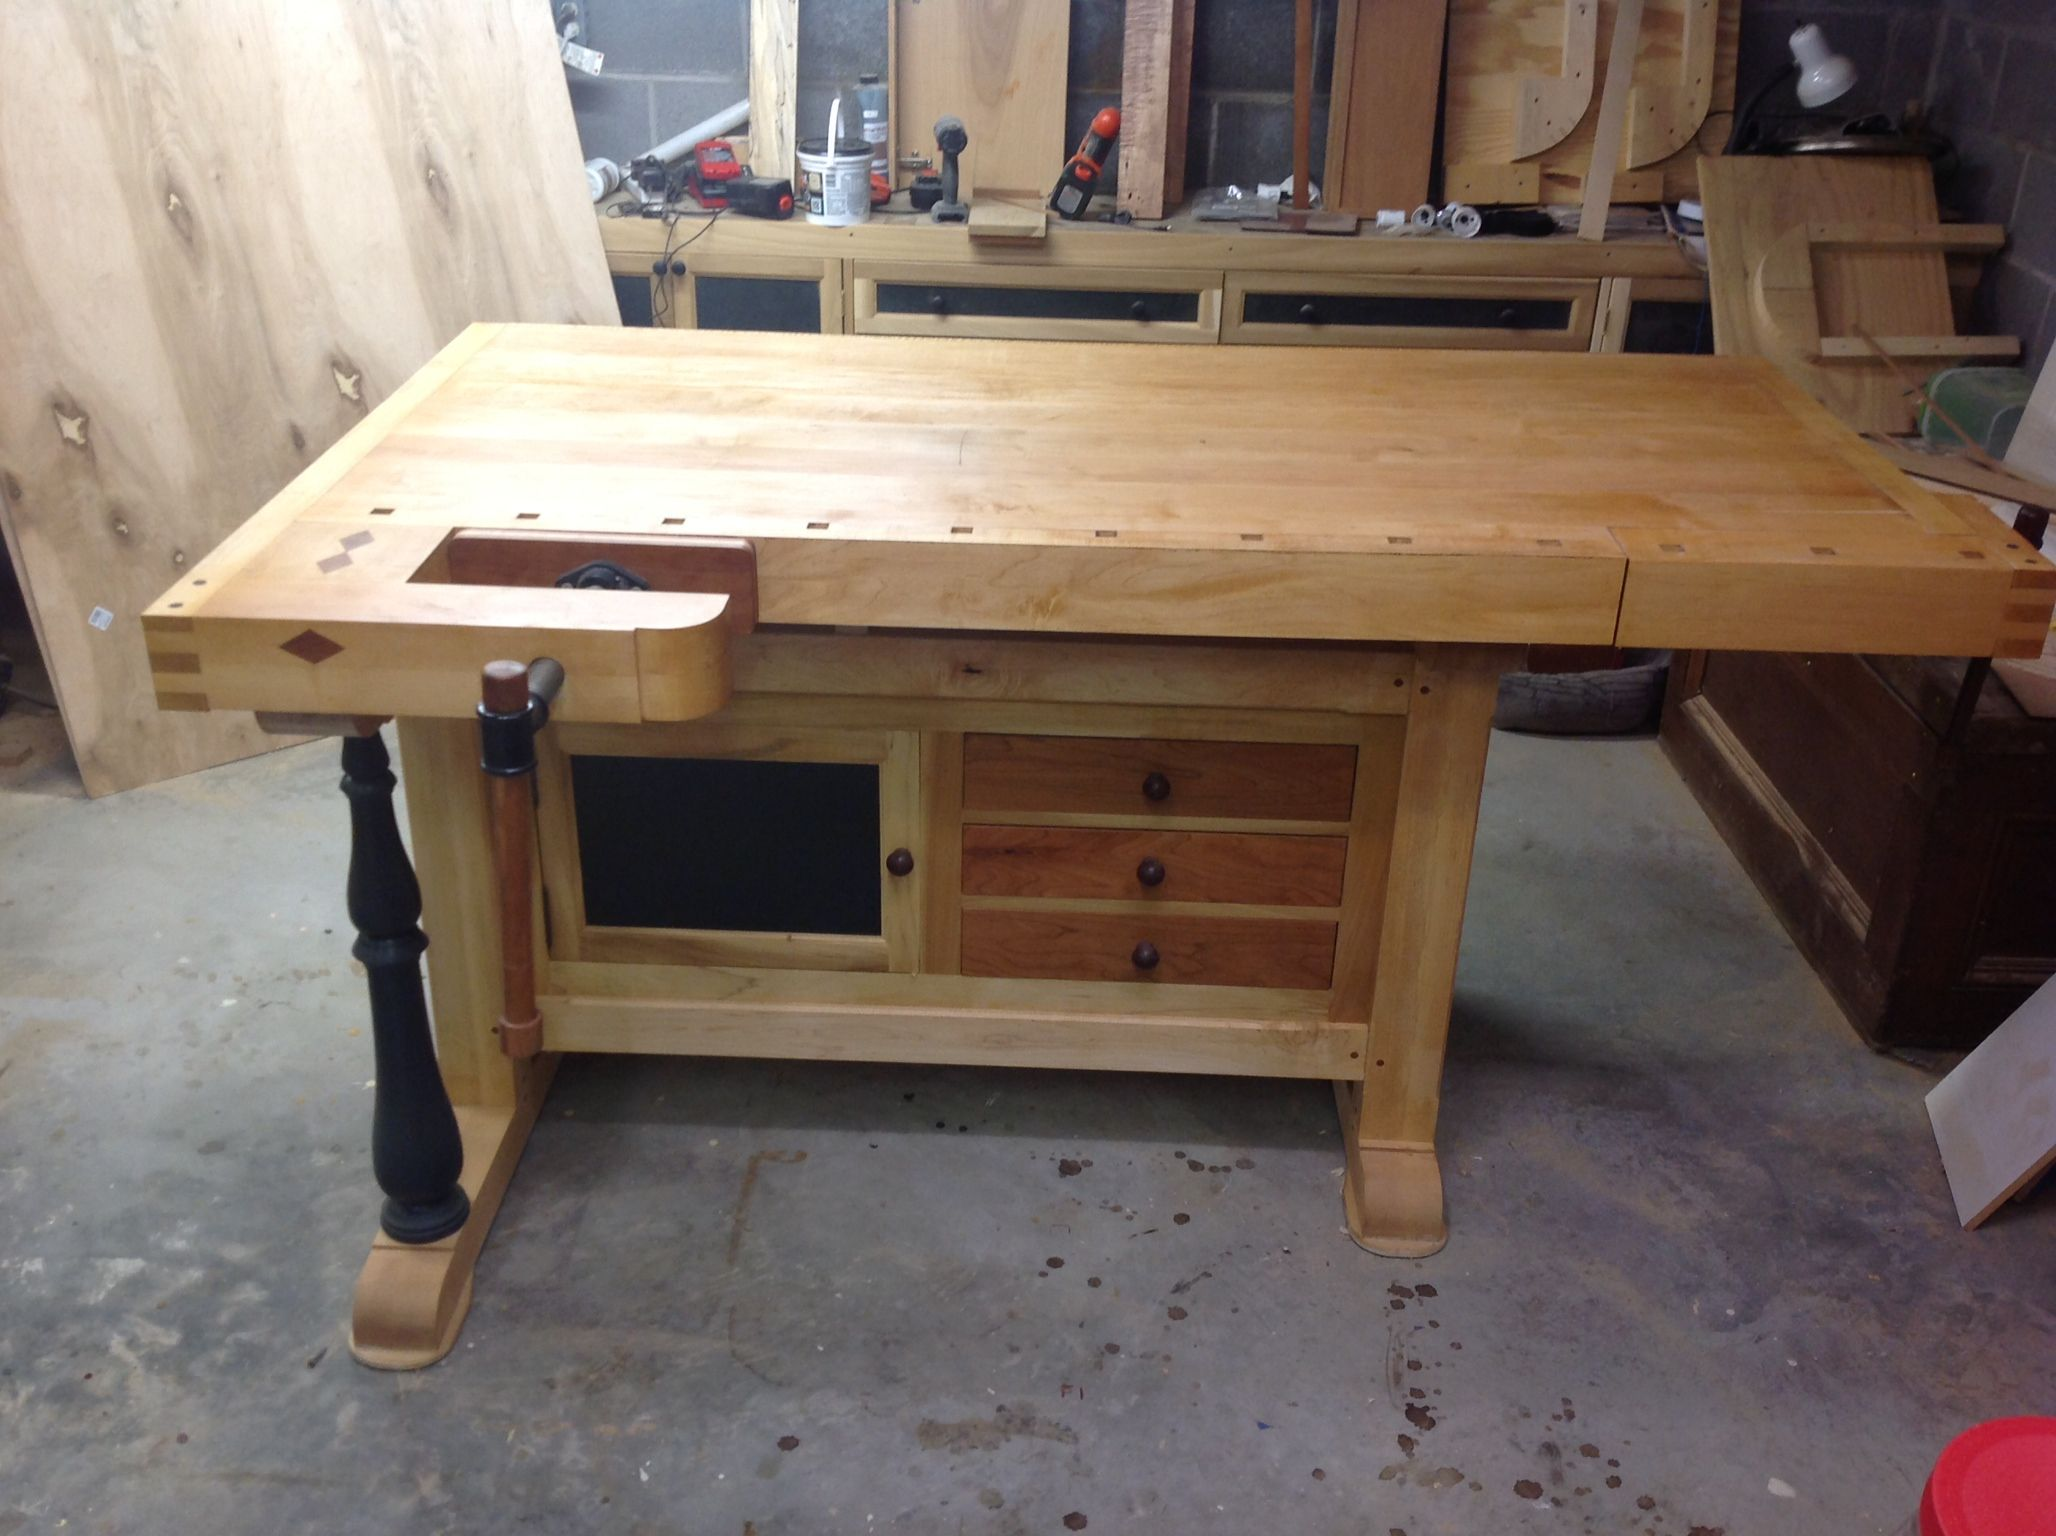 Plan De Travail Etabli My Workbench Etabli Woodworking Workbench Bench Et